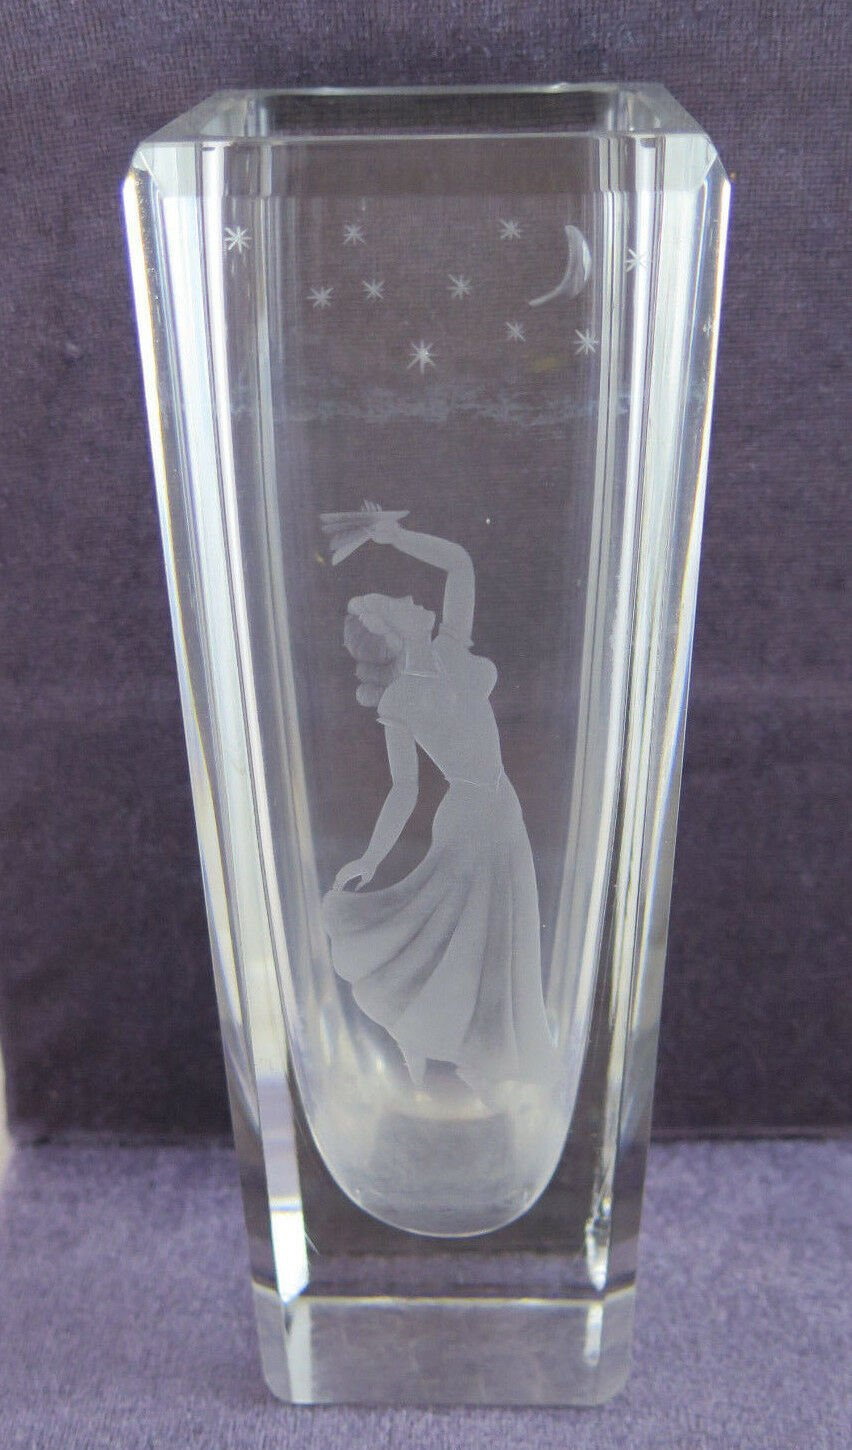 Vase Glass To Lead Denmark Deco' Engraved With Shapes Female Stars & R54